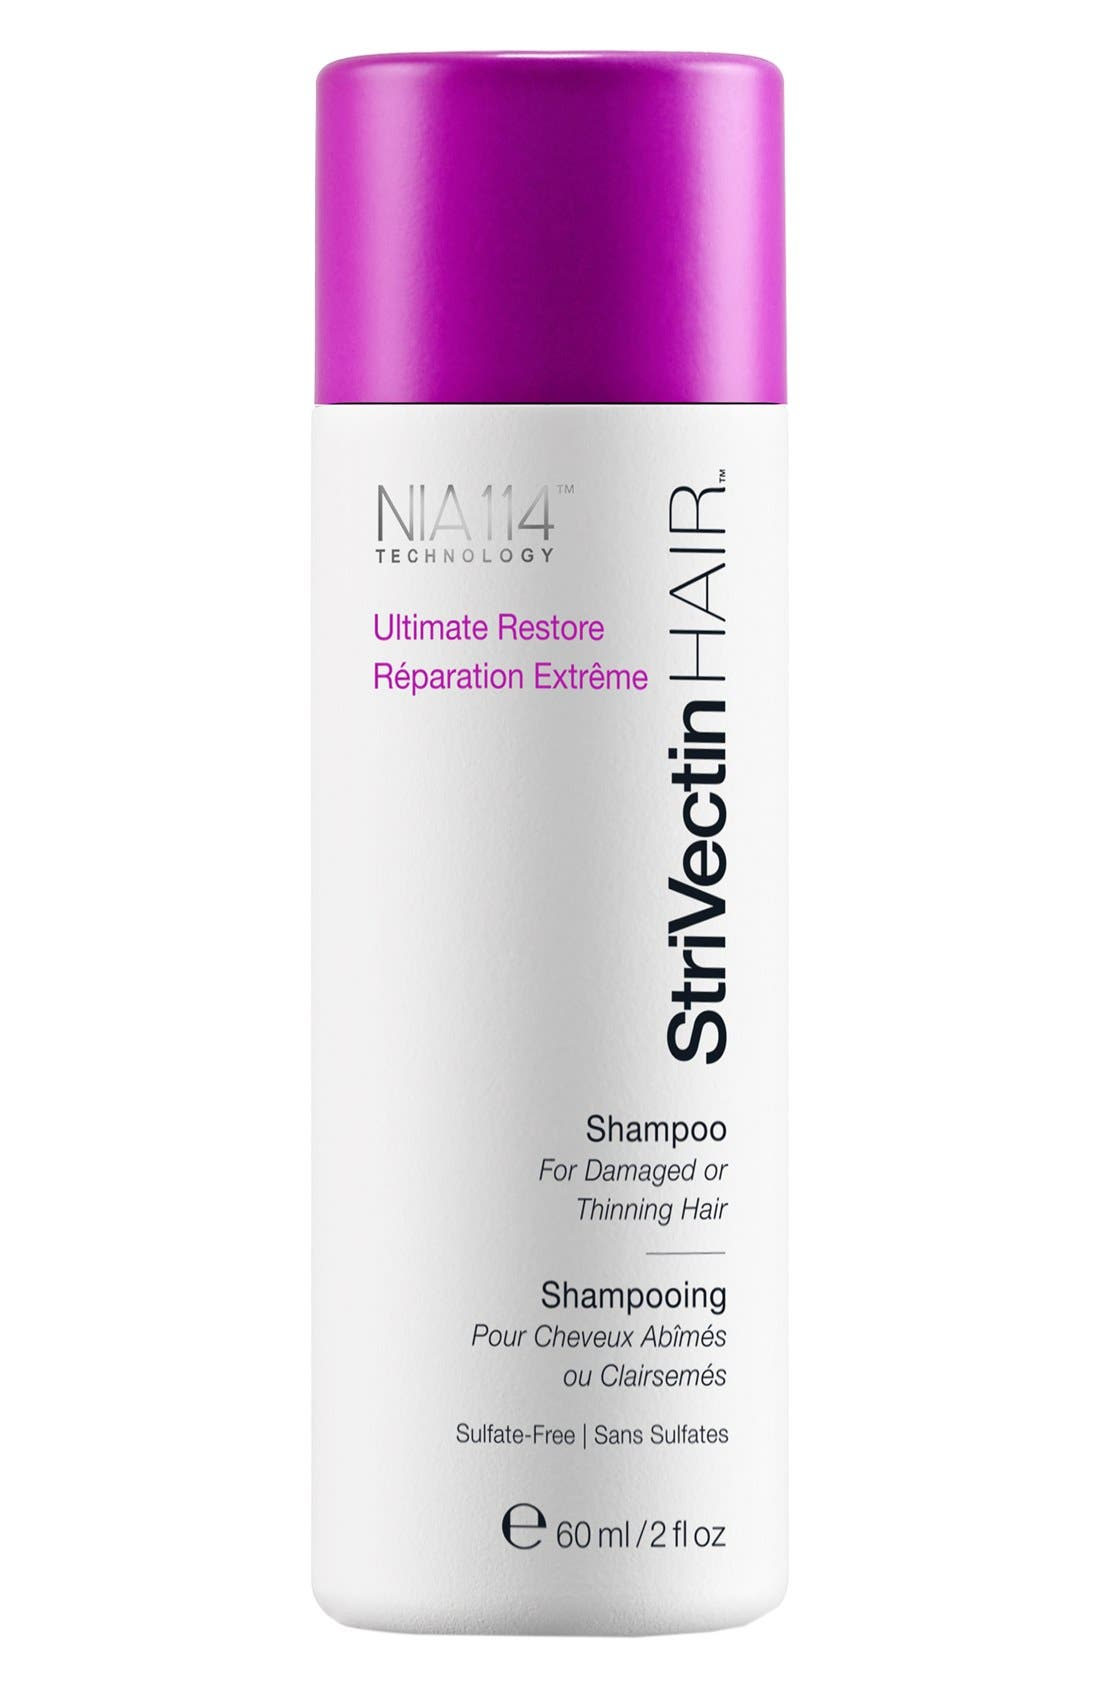 StriVectinHAIR™ 'Ultimate Restore' Shampoo for Damaged or Thinning Hair